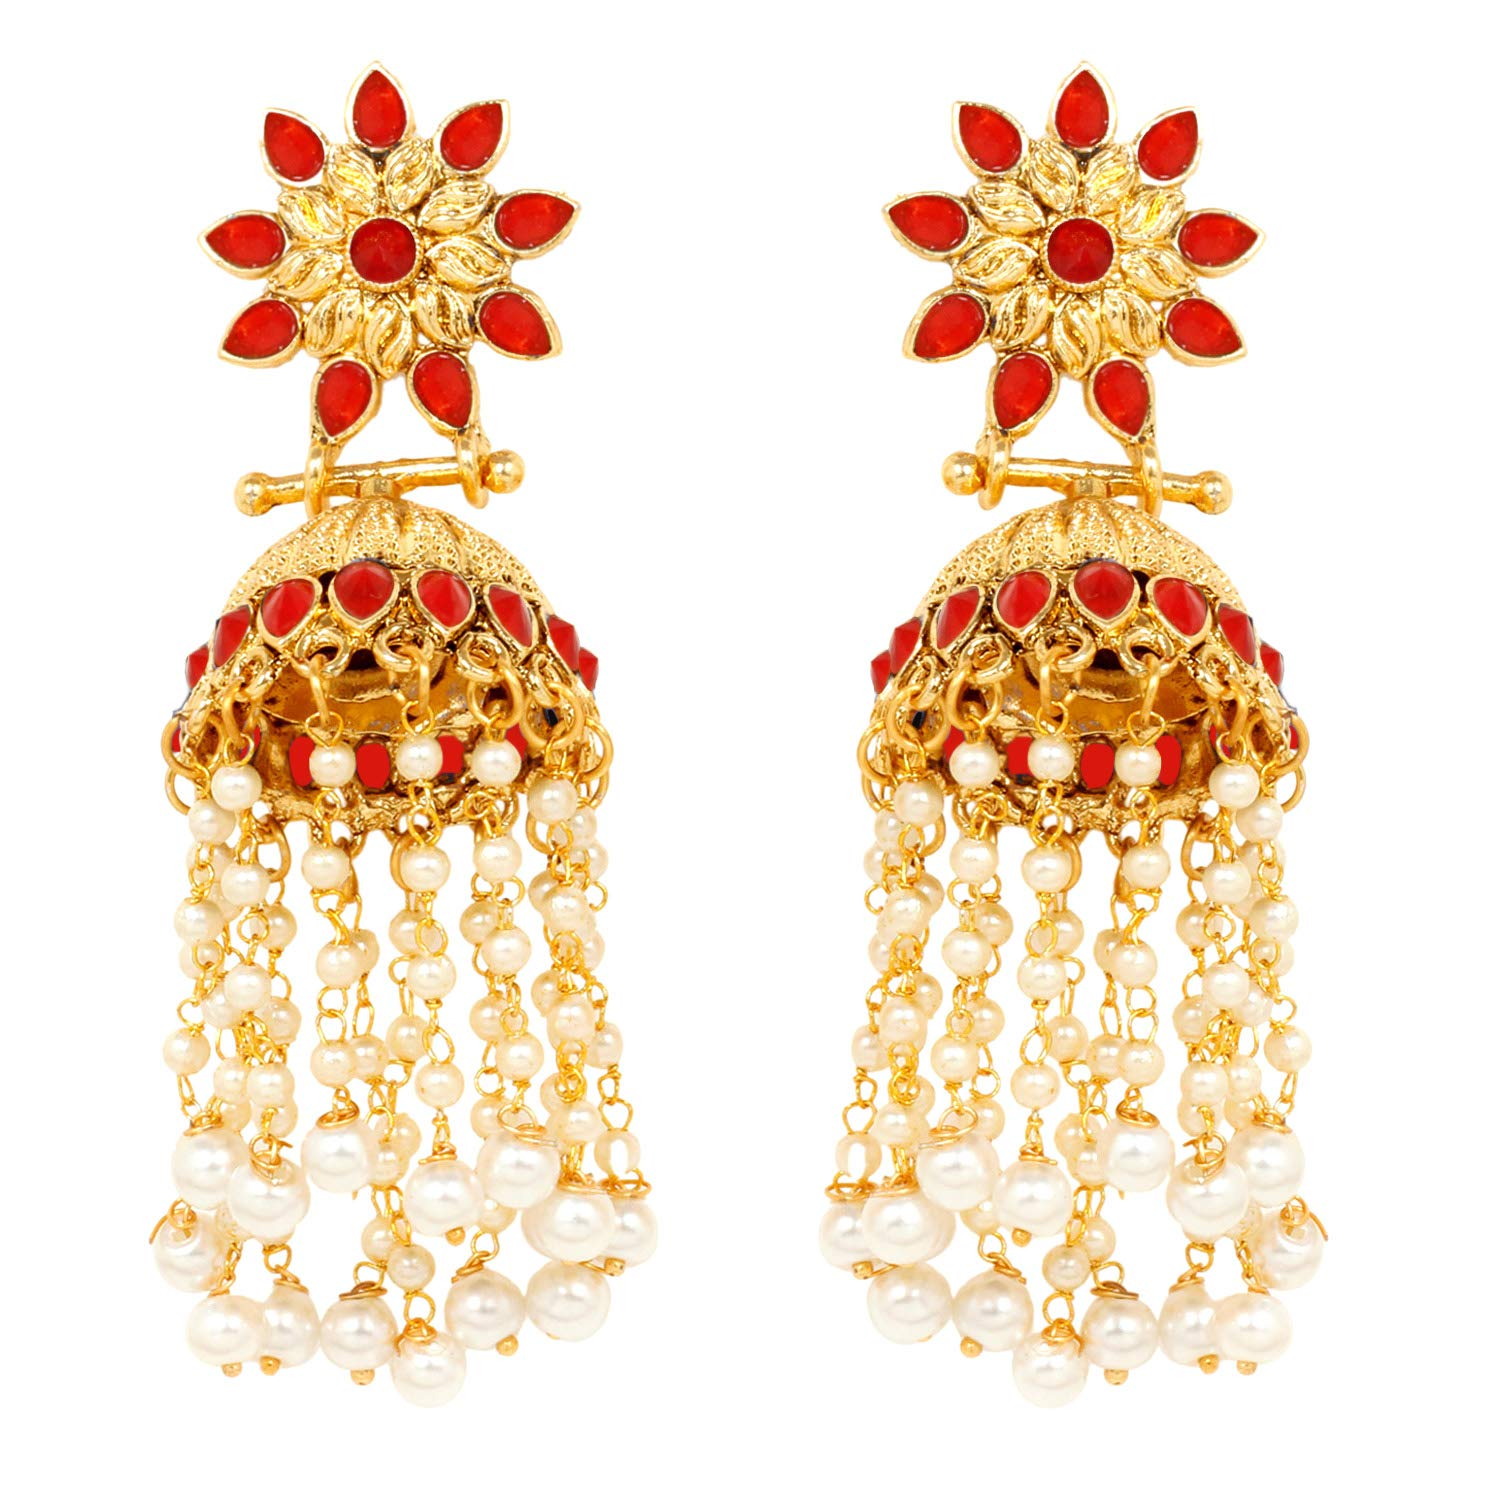 Ratna Indian Bollywood Ethnic Gold Tone Pearl Jhumka Jhumki 4 Different ColorStone Polki Bridal Earring Set Traditional Jewelry